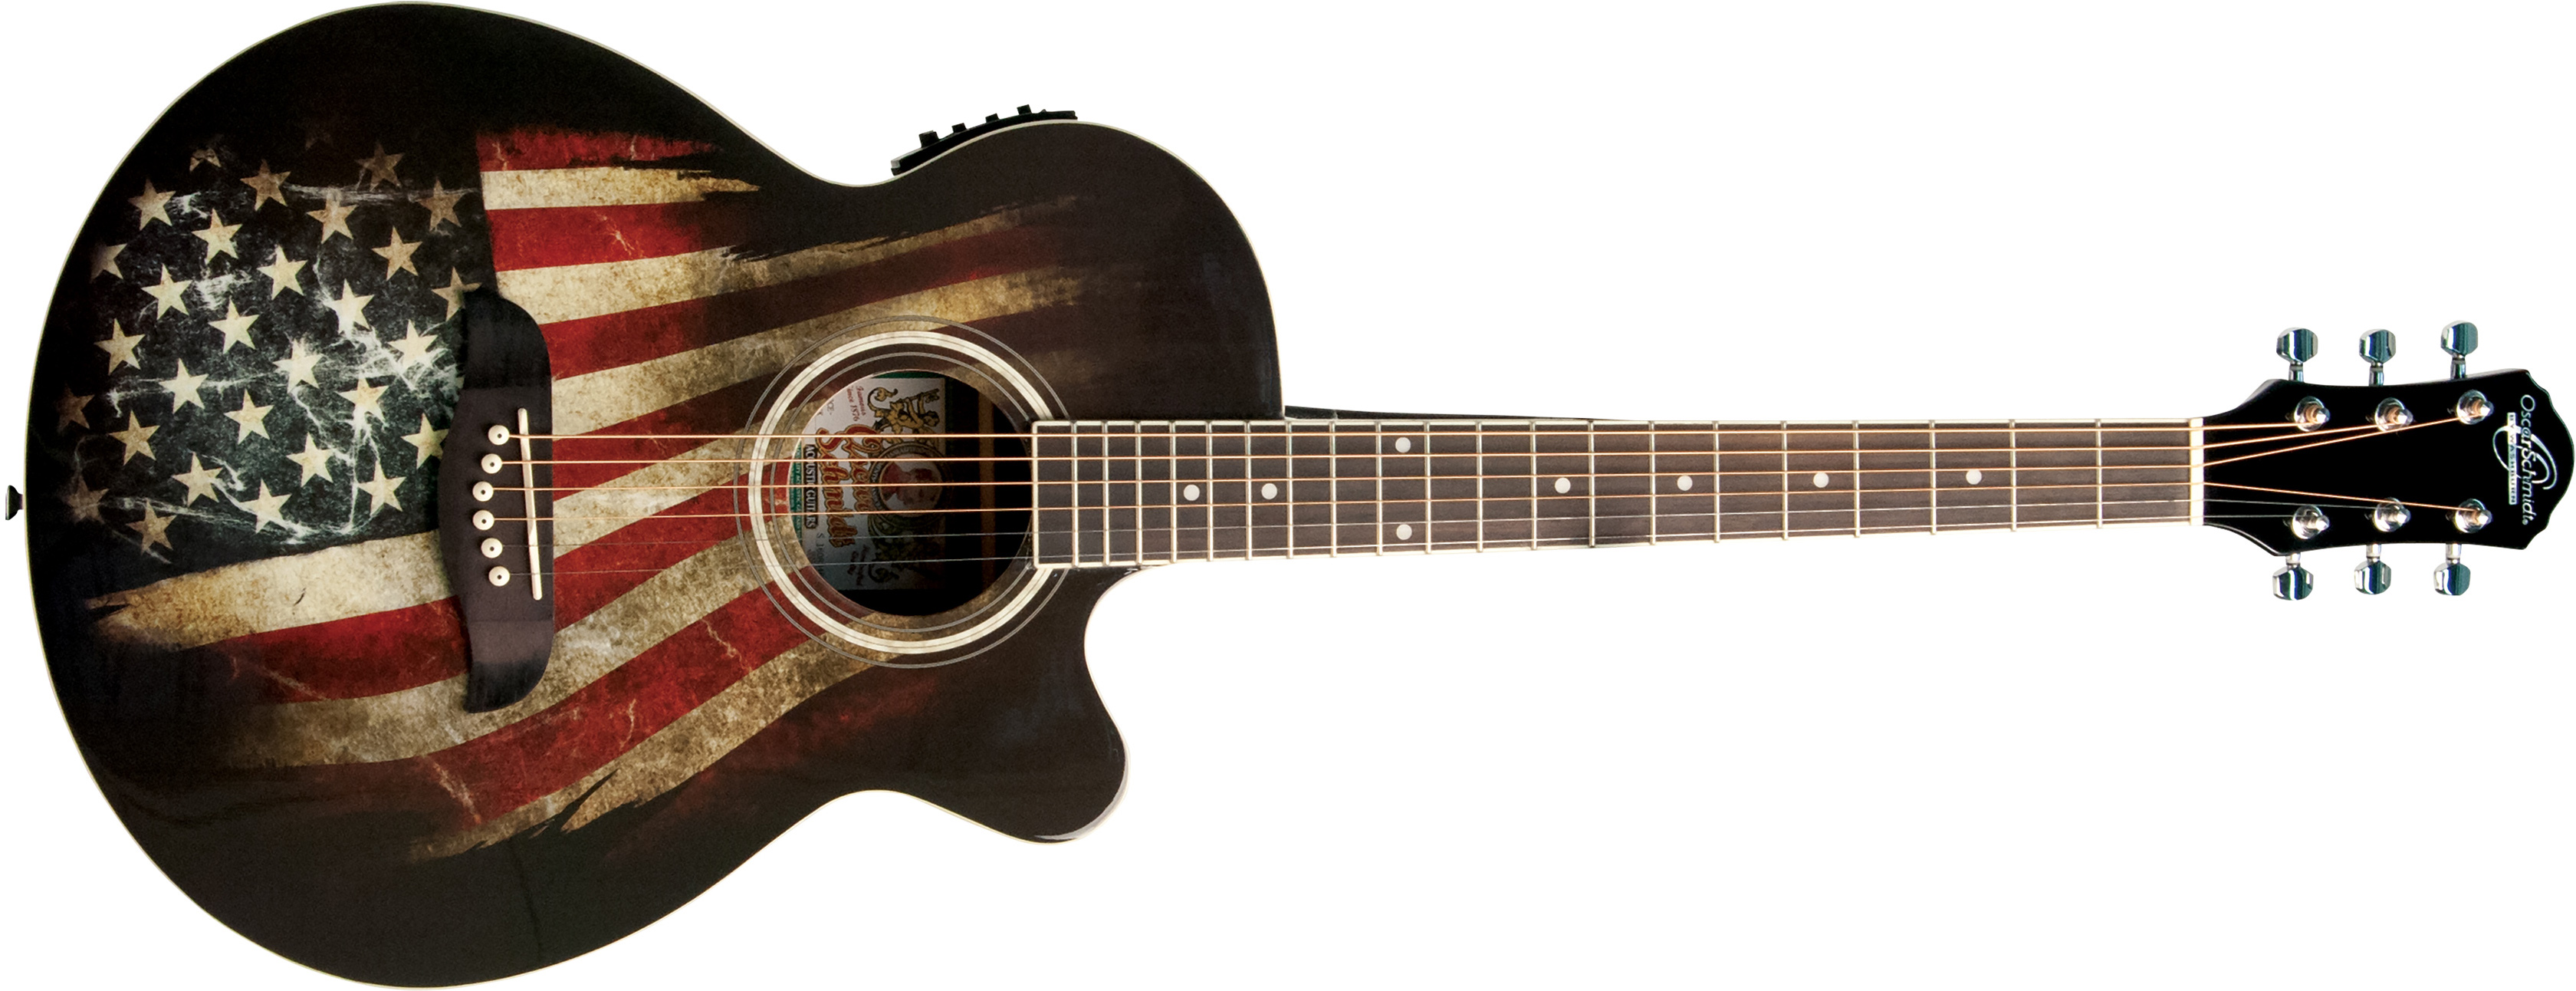 Oscar Schmidt acoustic/electric guitar with American flag design on body